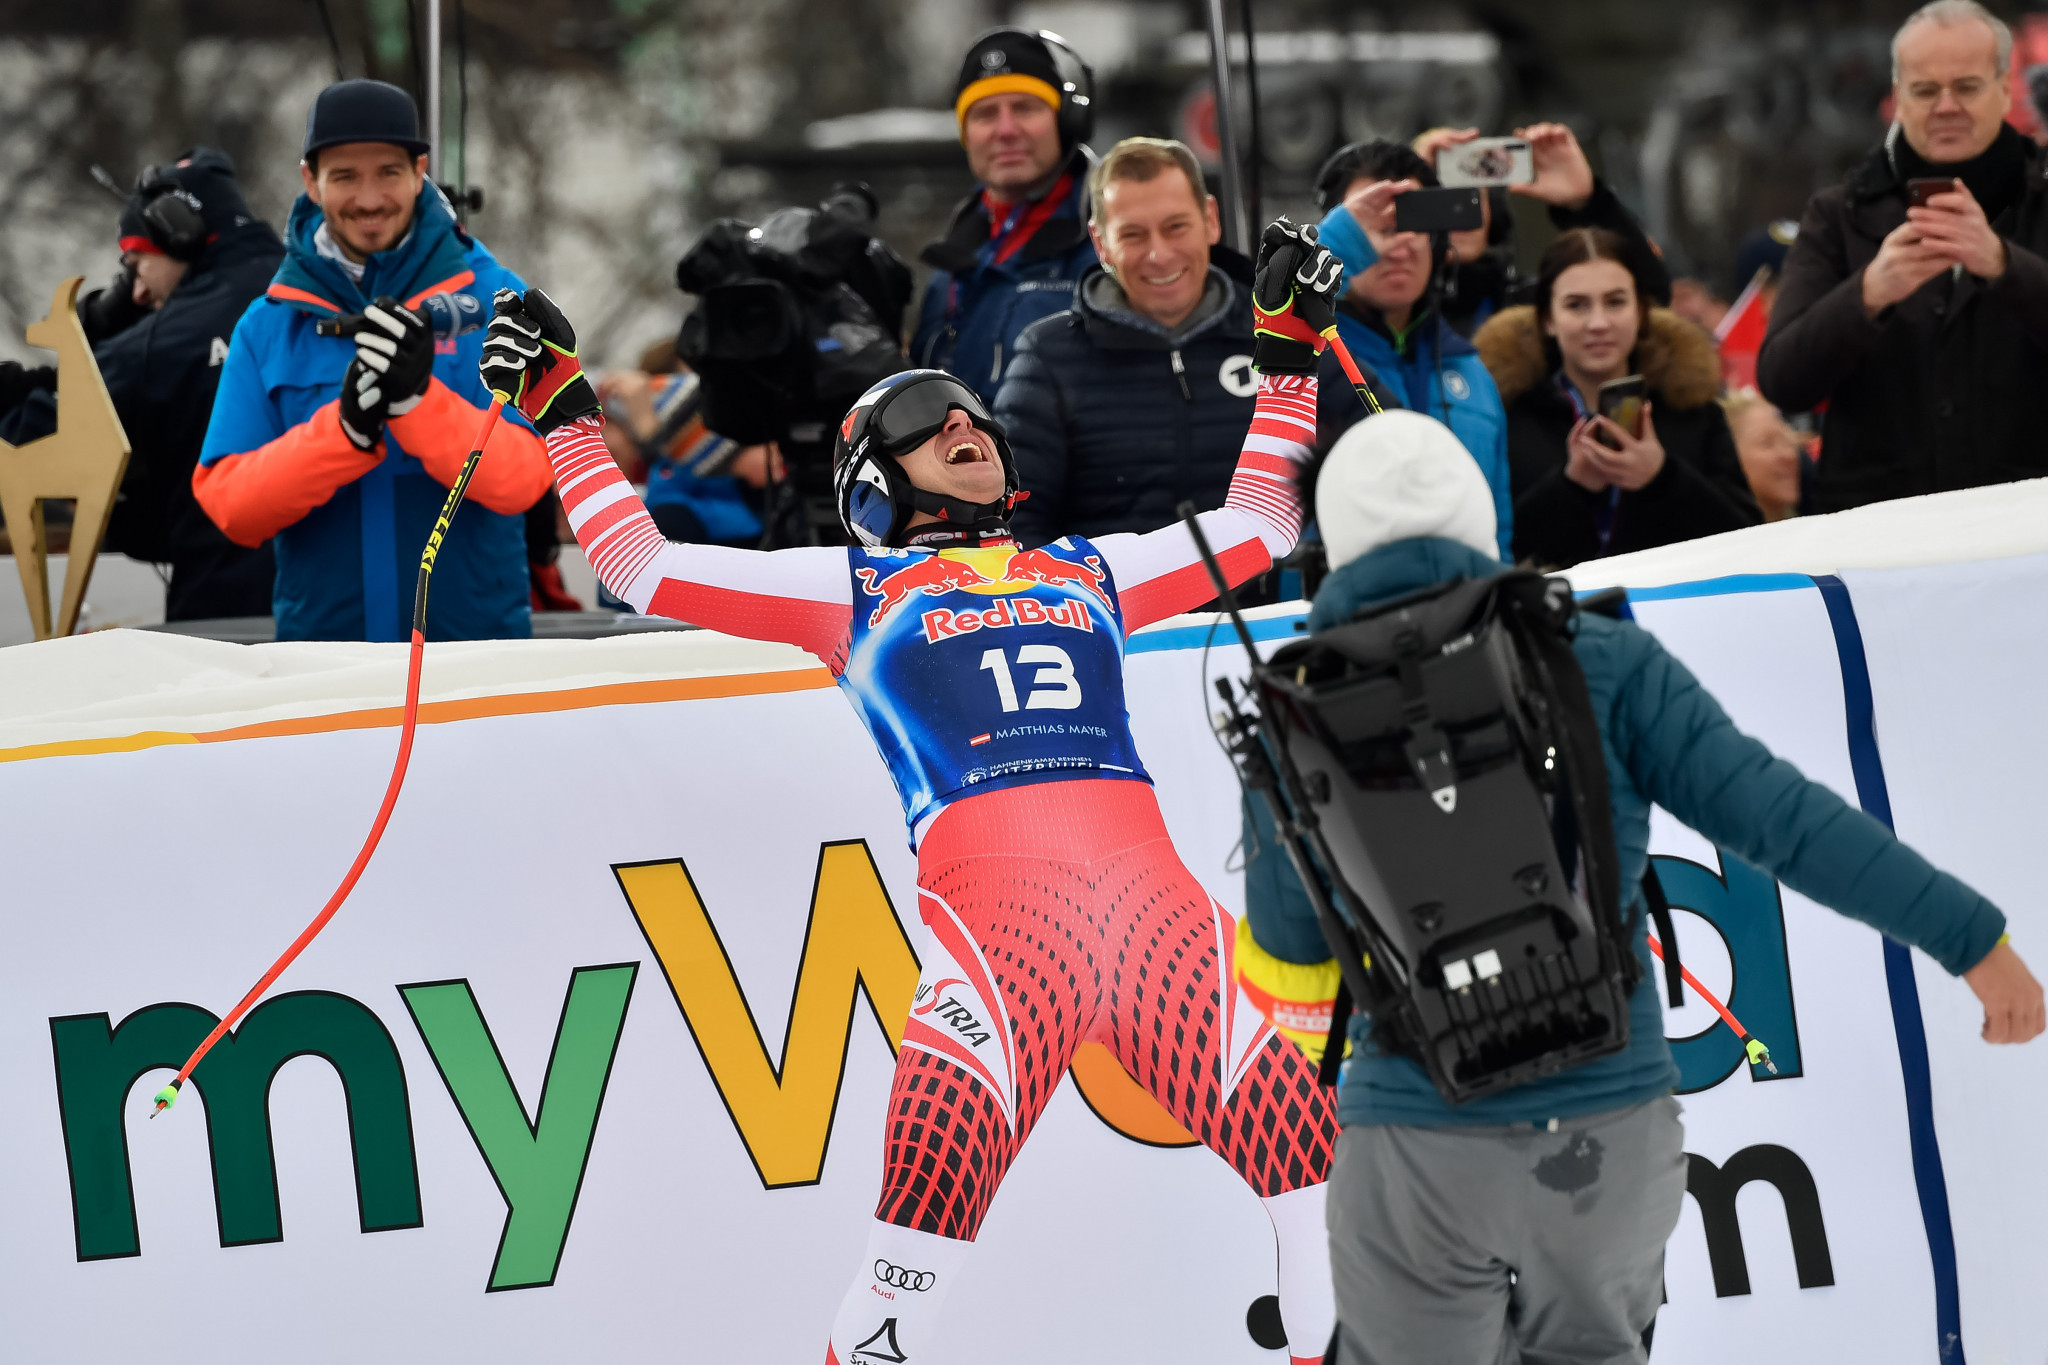 Home skier Mayer earns downhill win at FIS World Cup in Kitzbühel